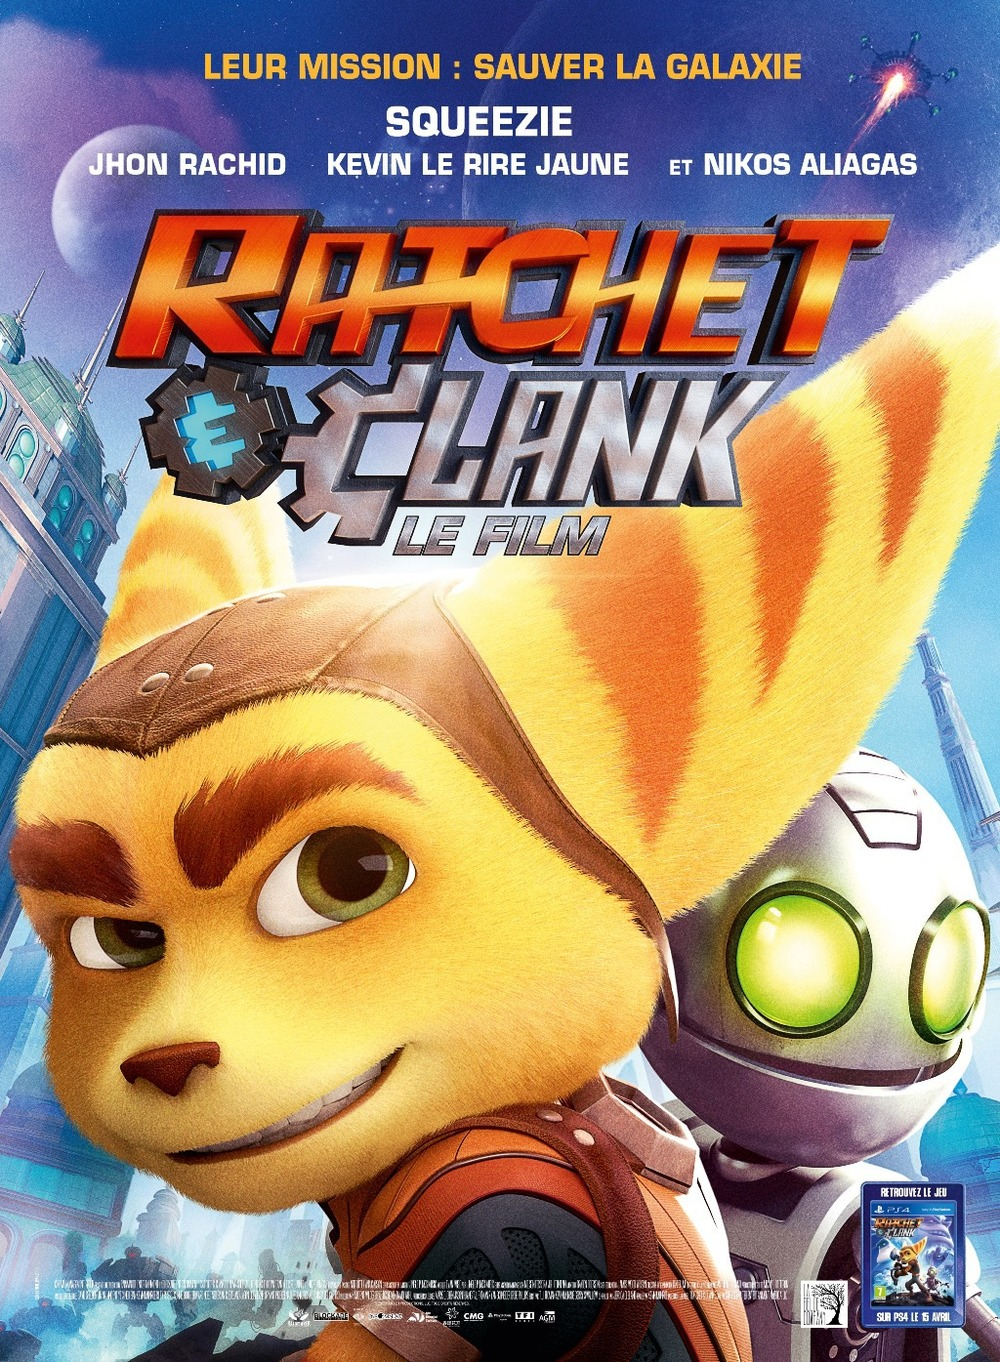 Ratchet And Clank PS4 Release Date And Box Art Revealed